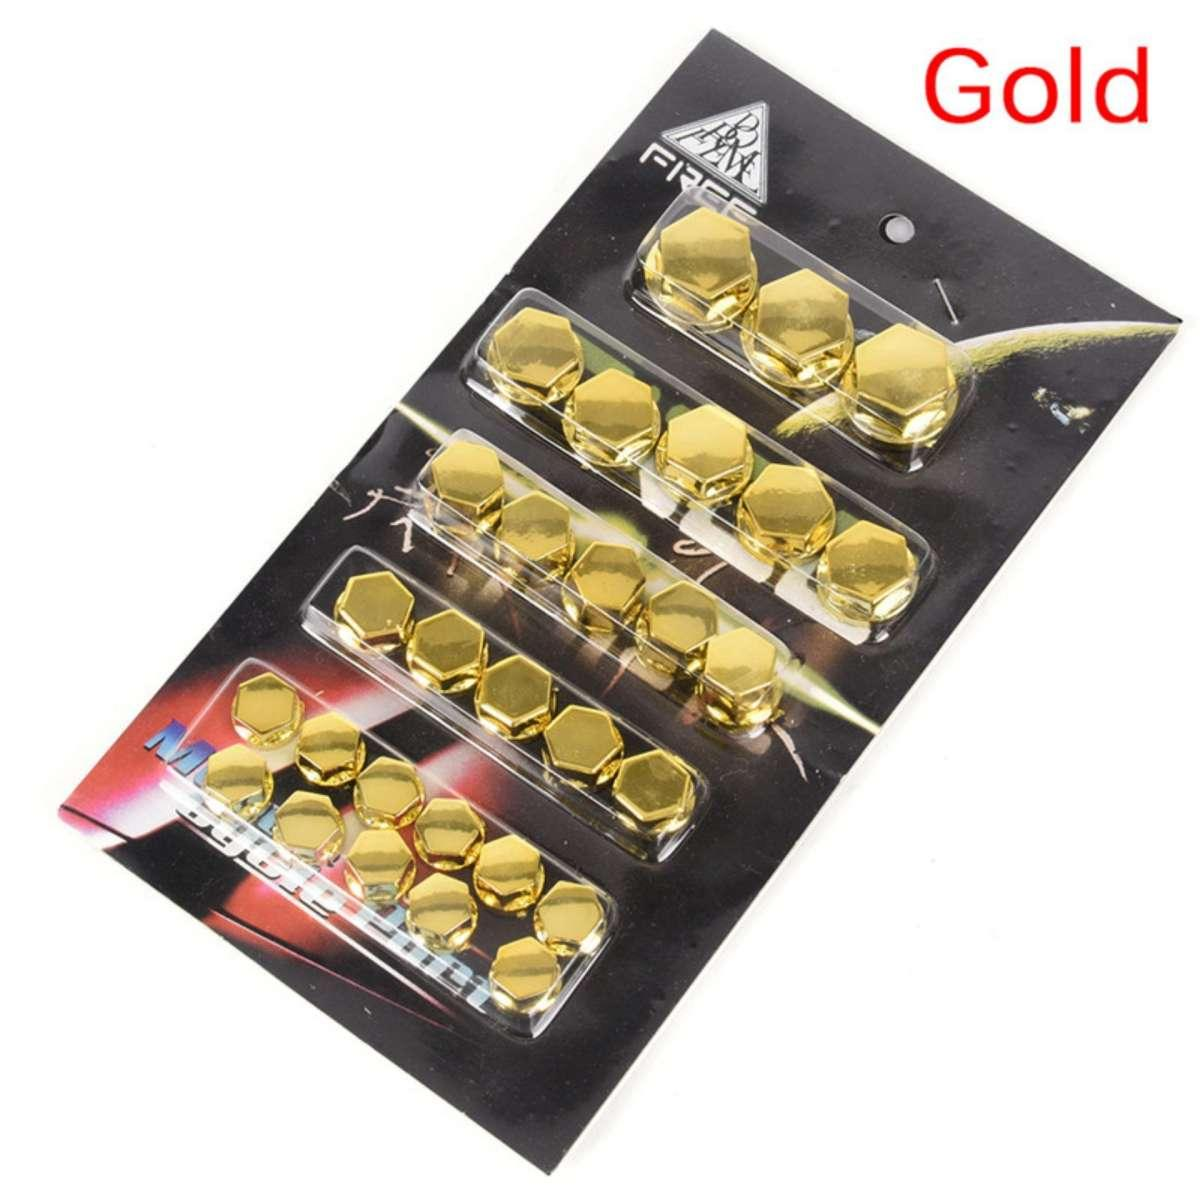 30pcs Motorcycle Screw Nut Bolt Cap Cover Decoration Centro Motorbike Ornament Gold By Luisone.